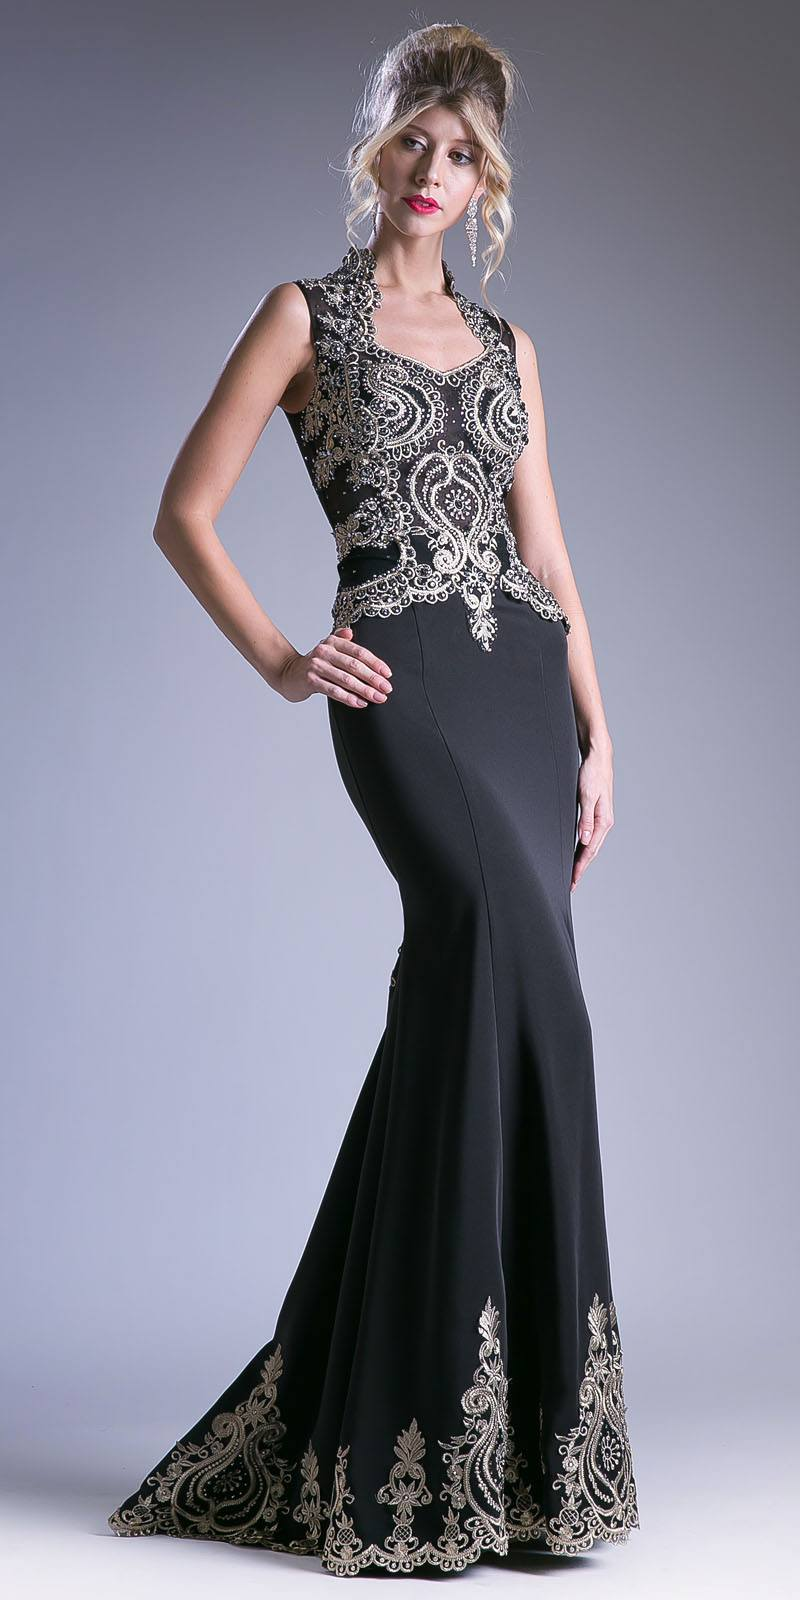 39c5c615754 Embroidered Mermaid Evening Gown Queen Anne Neckline Black. Tap to expand